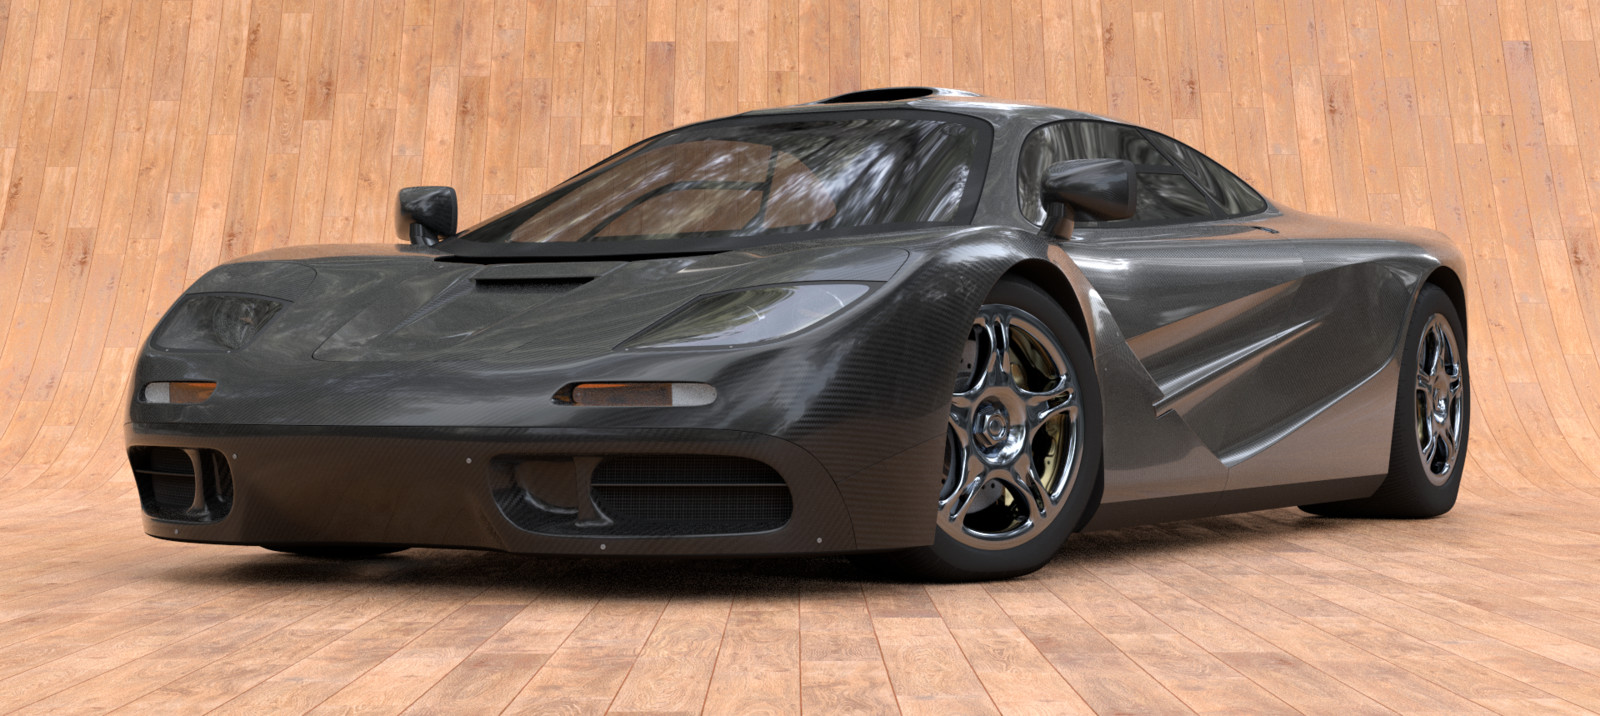 A car with carbon fibers body